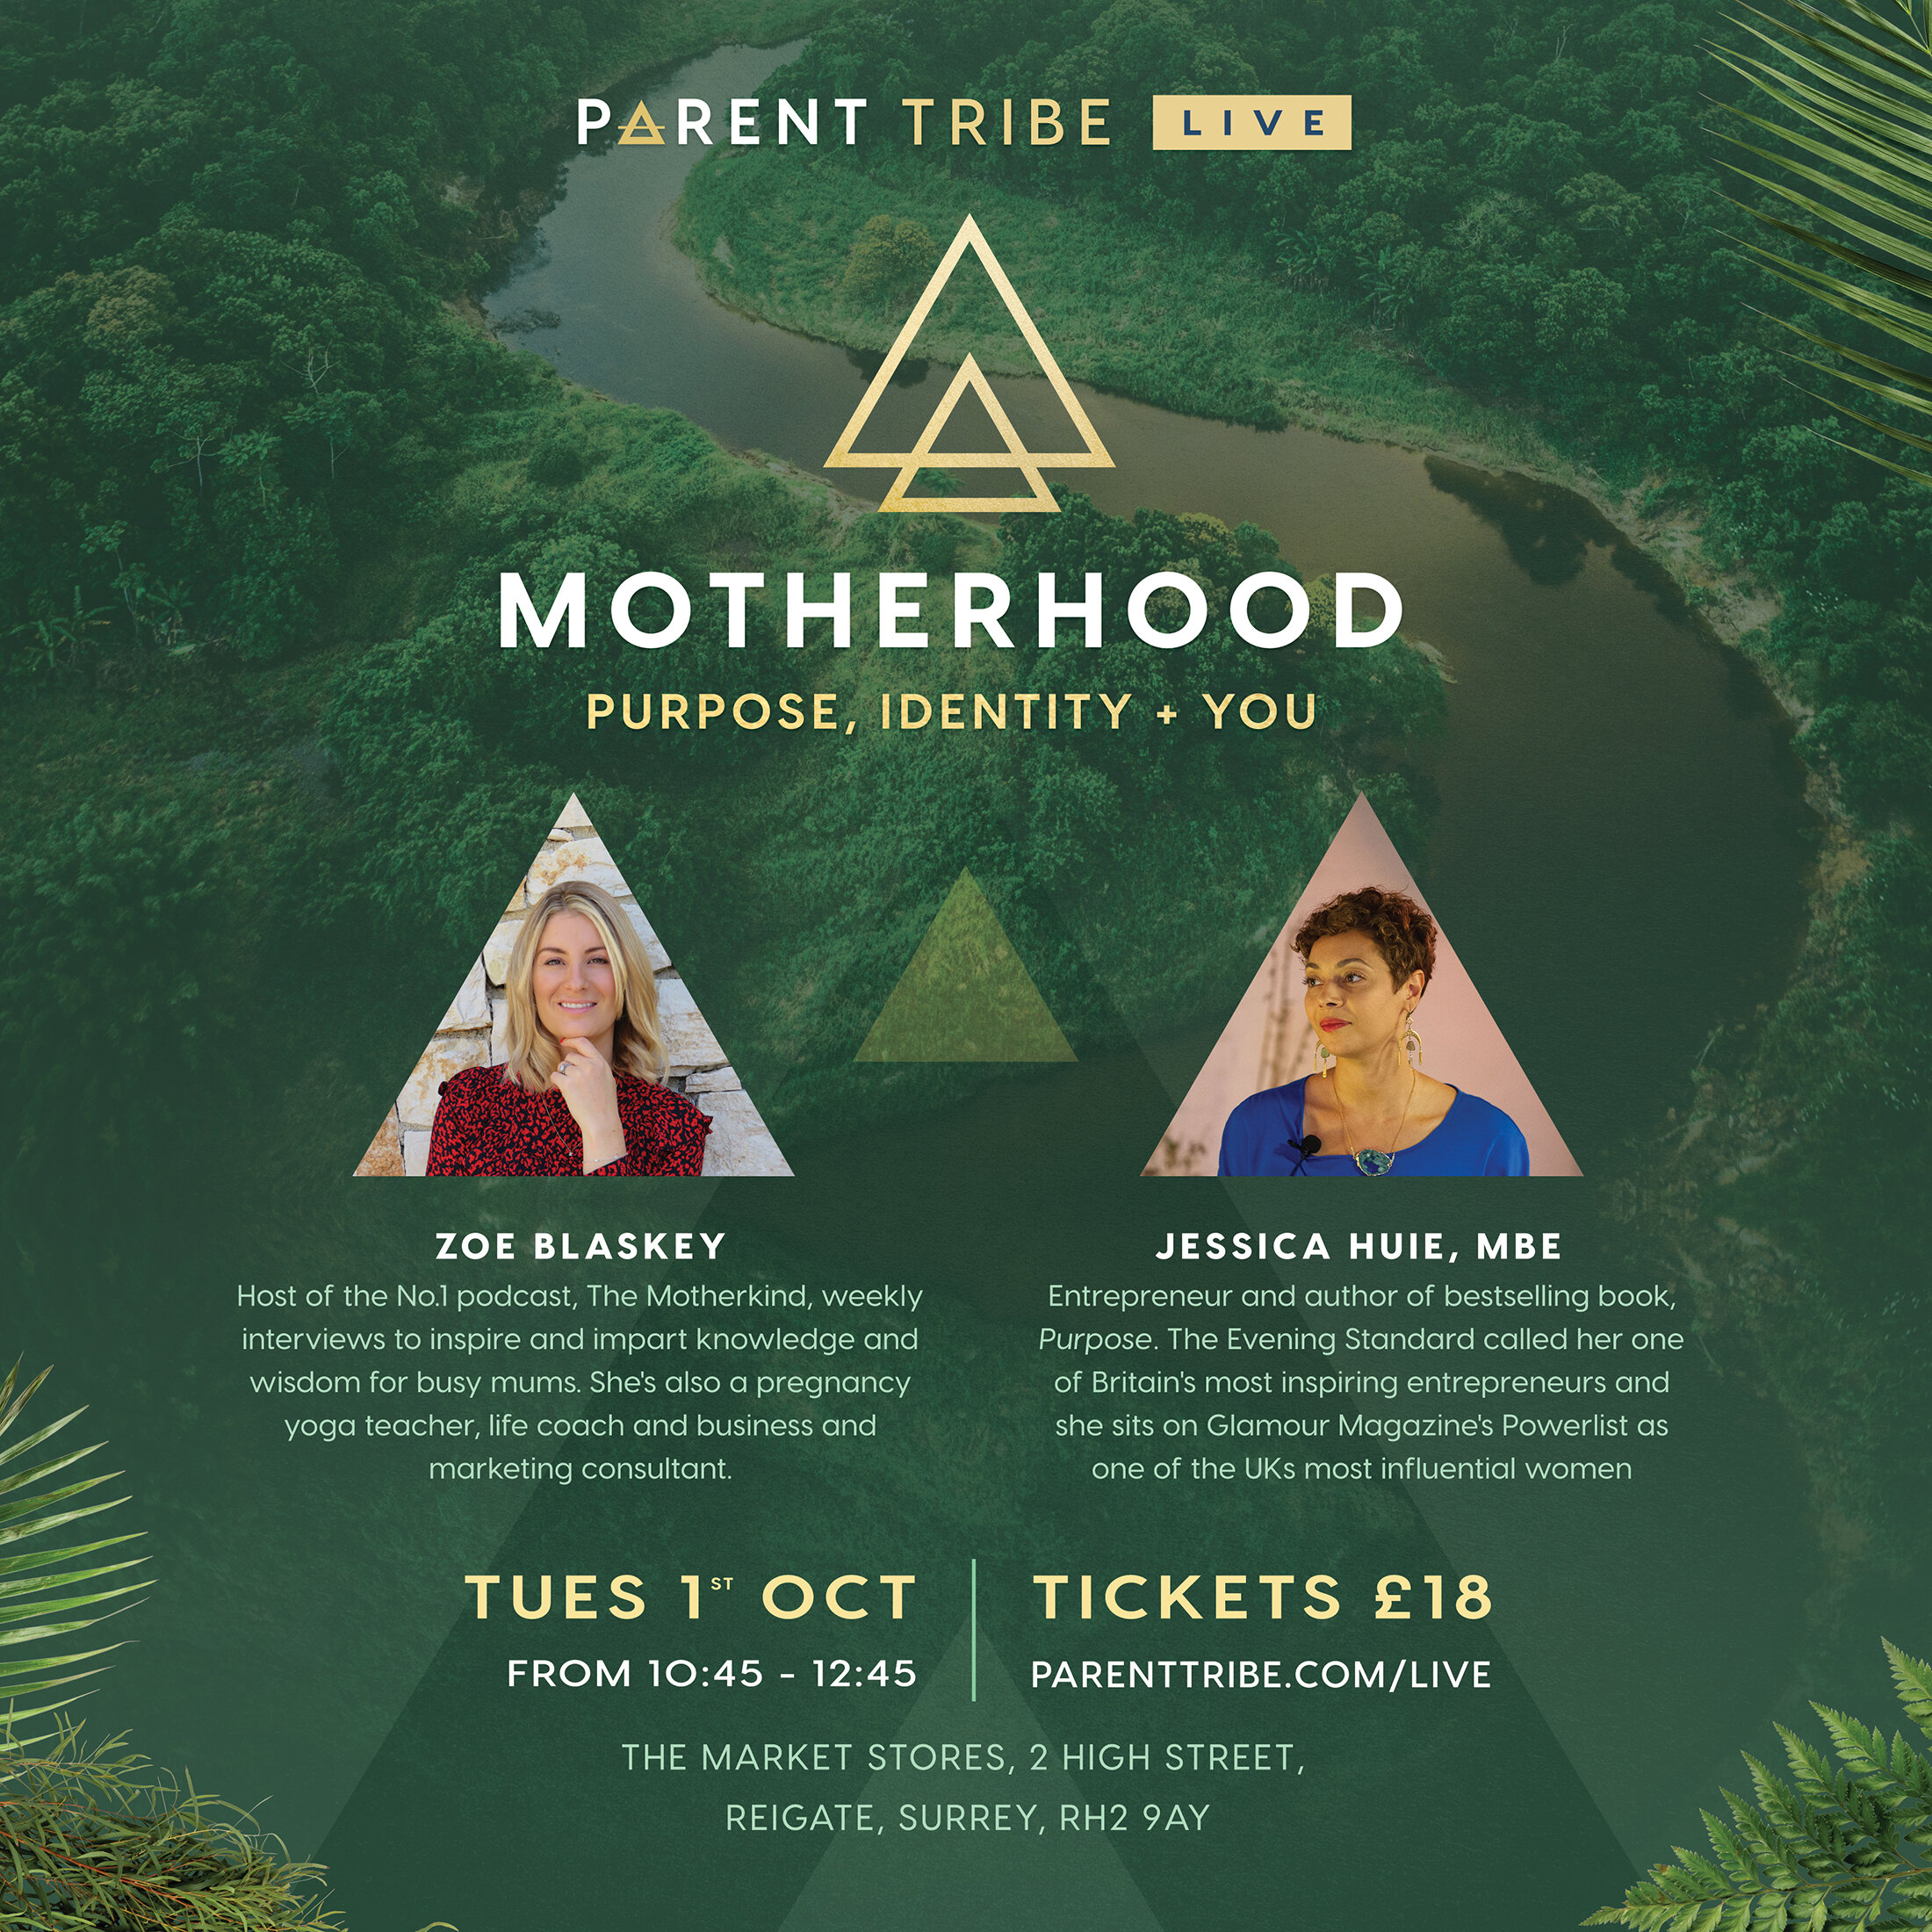 - After our first sell-out event earlier this year, Parent Tribe LIVE is back with two more incredible guest speakers: Zoe Blaskey and Jessica Huie, MBE.Be prepared to get inspired by their stories and energised by their approach to modern motherhood, running a business and discovering their true purpose in life. Join us in Reigate, Surrey, for this special event.